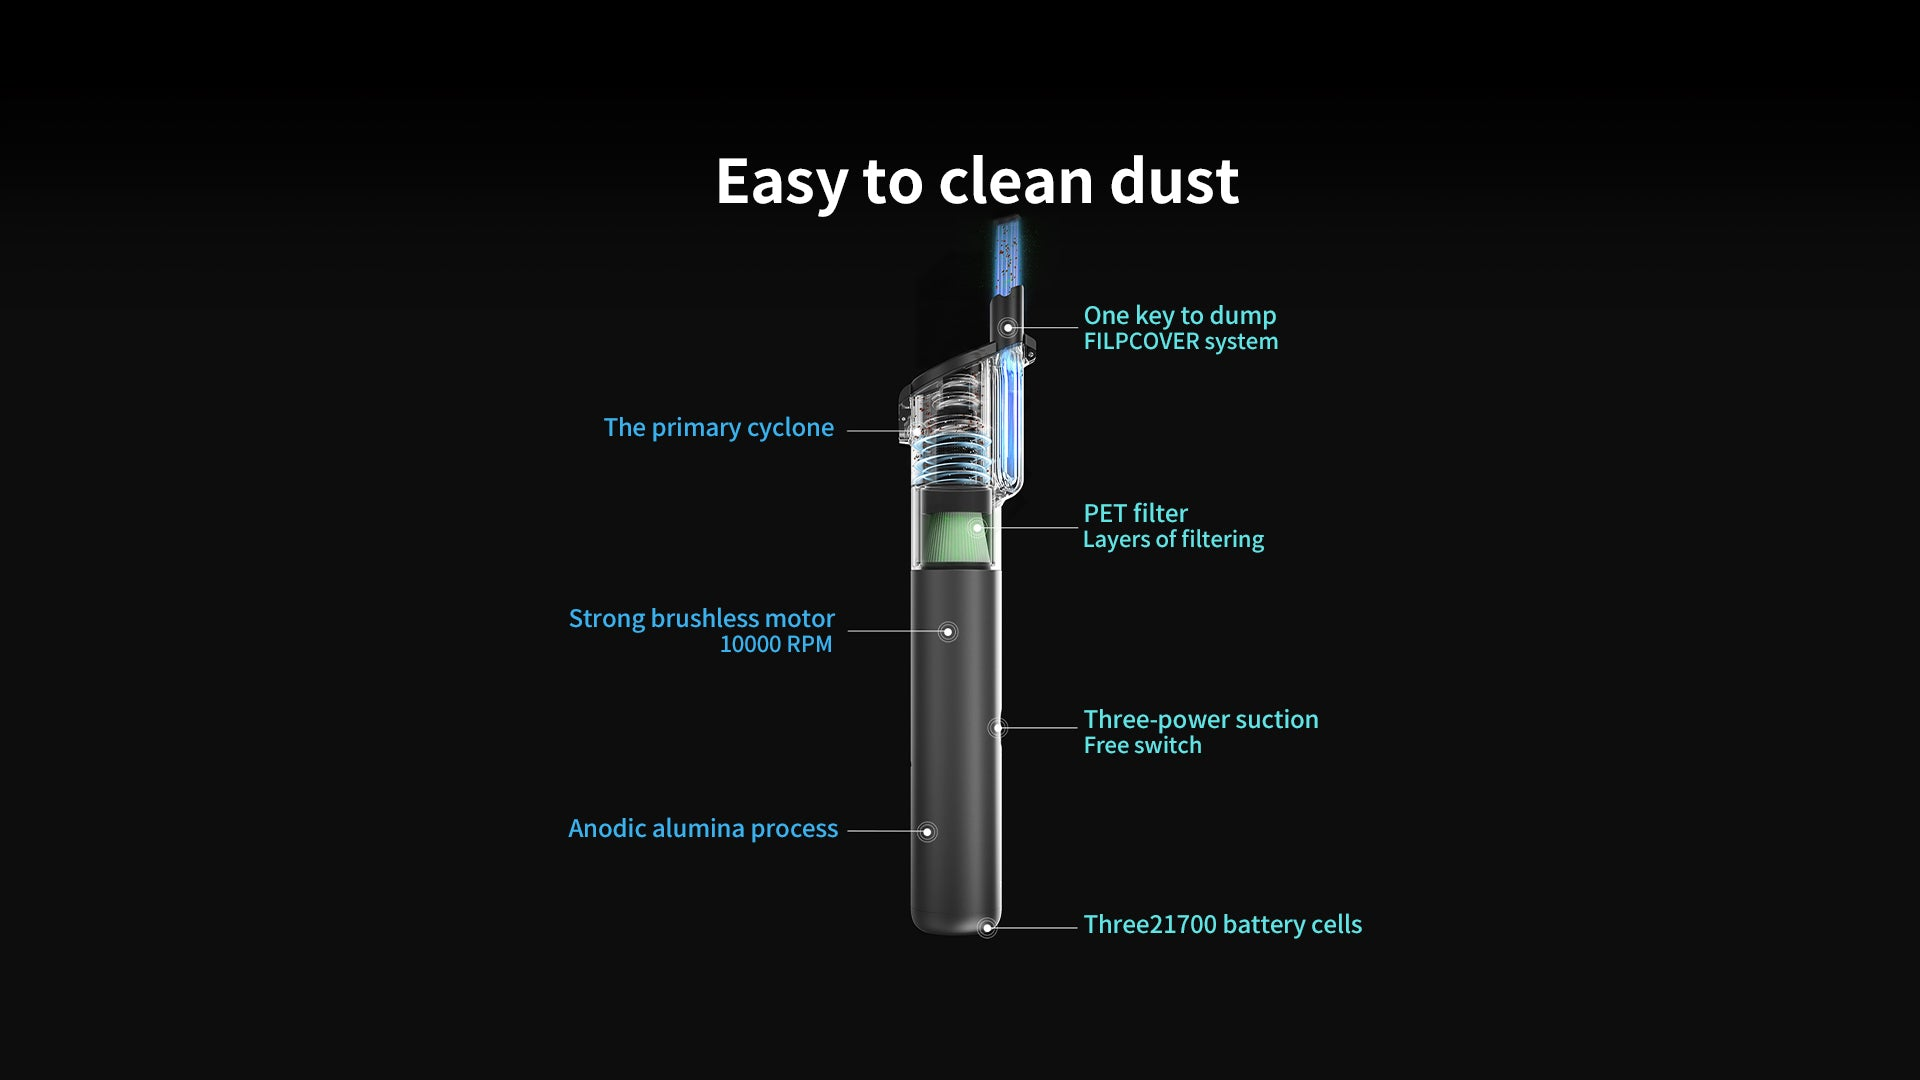 The surging suction comes from the brushless motor Hight-speed brushless motor,20000pa tDisruptive big suction,three 21700 battery cells 40min lasting working,wireless charging base,intelligent chip,triple high-effect filtering